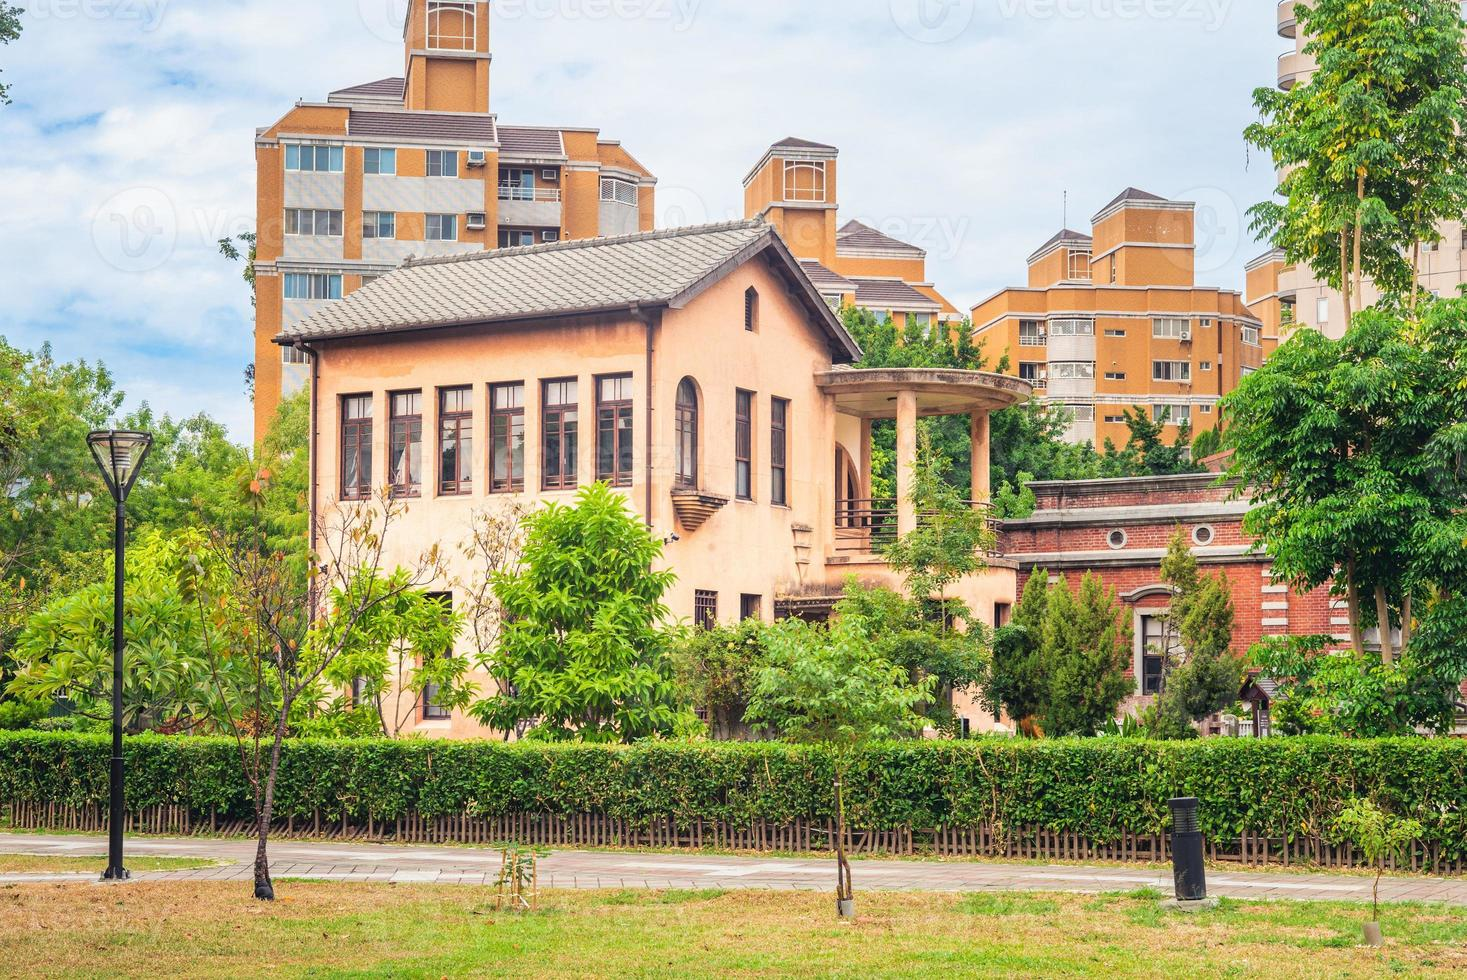 yide mansion, une ancienne résidence à taichung, taiwan photo